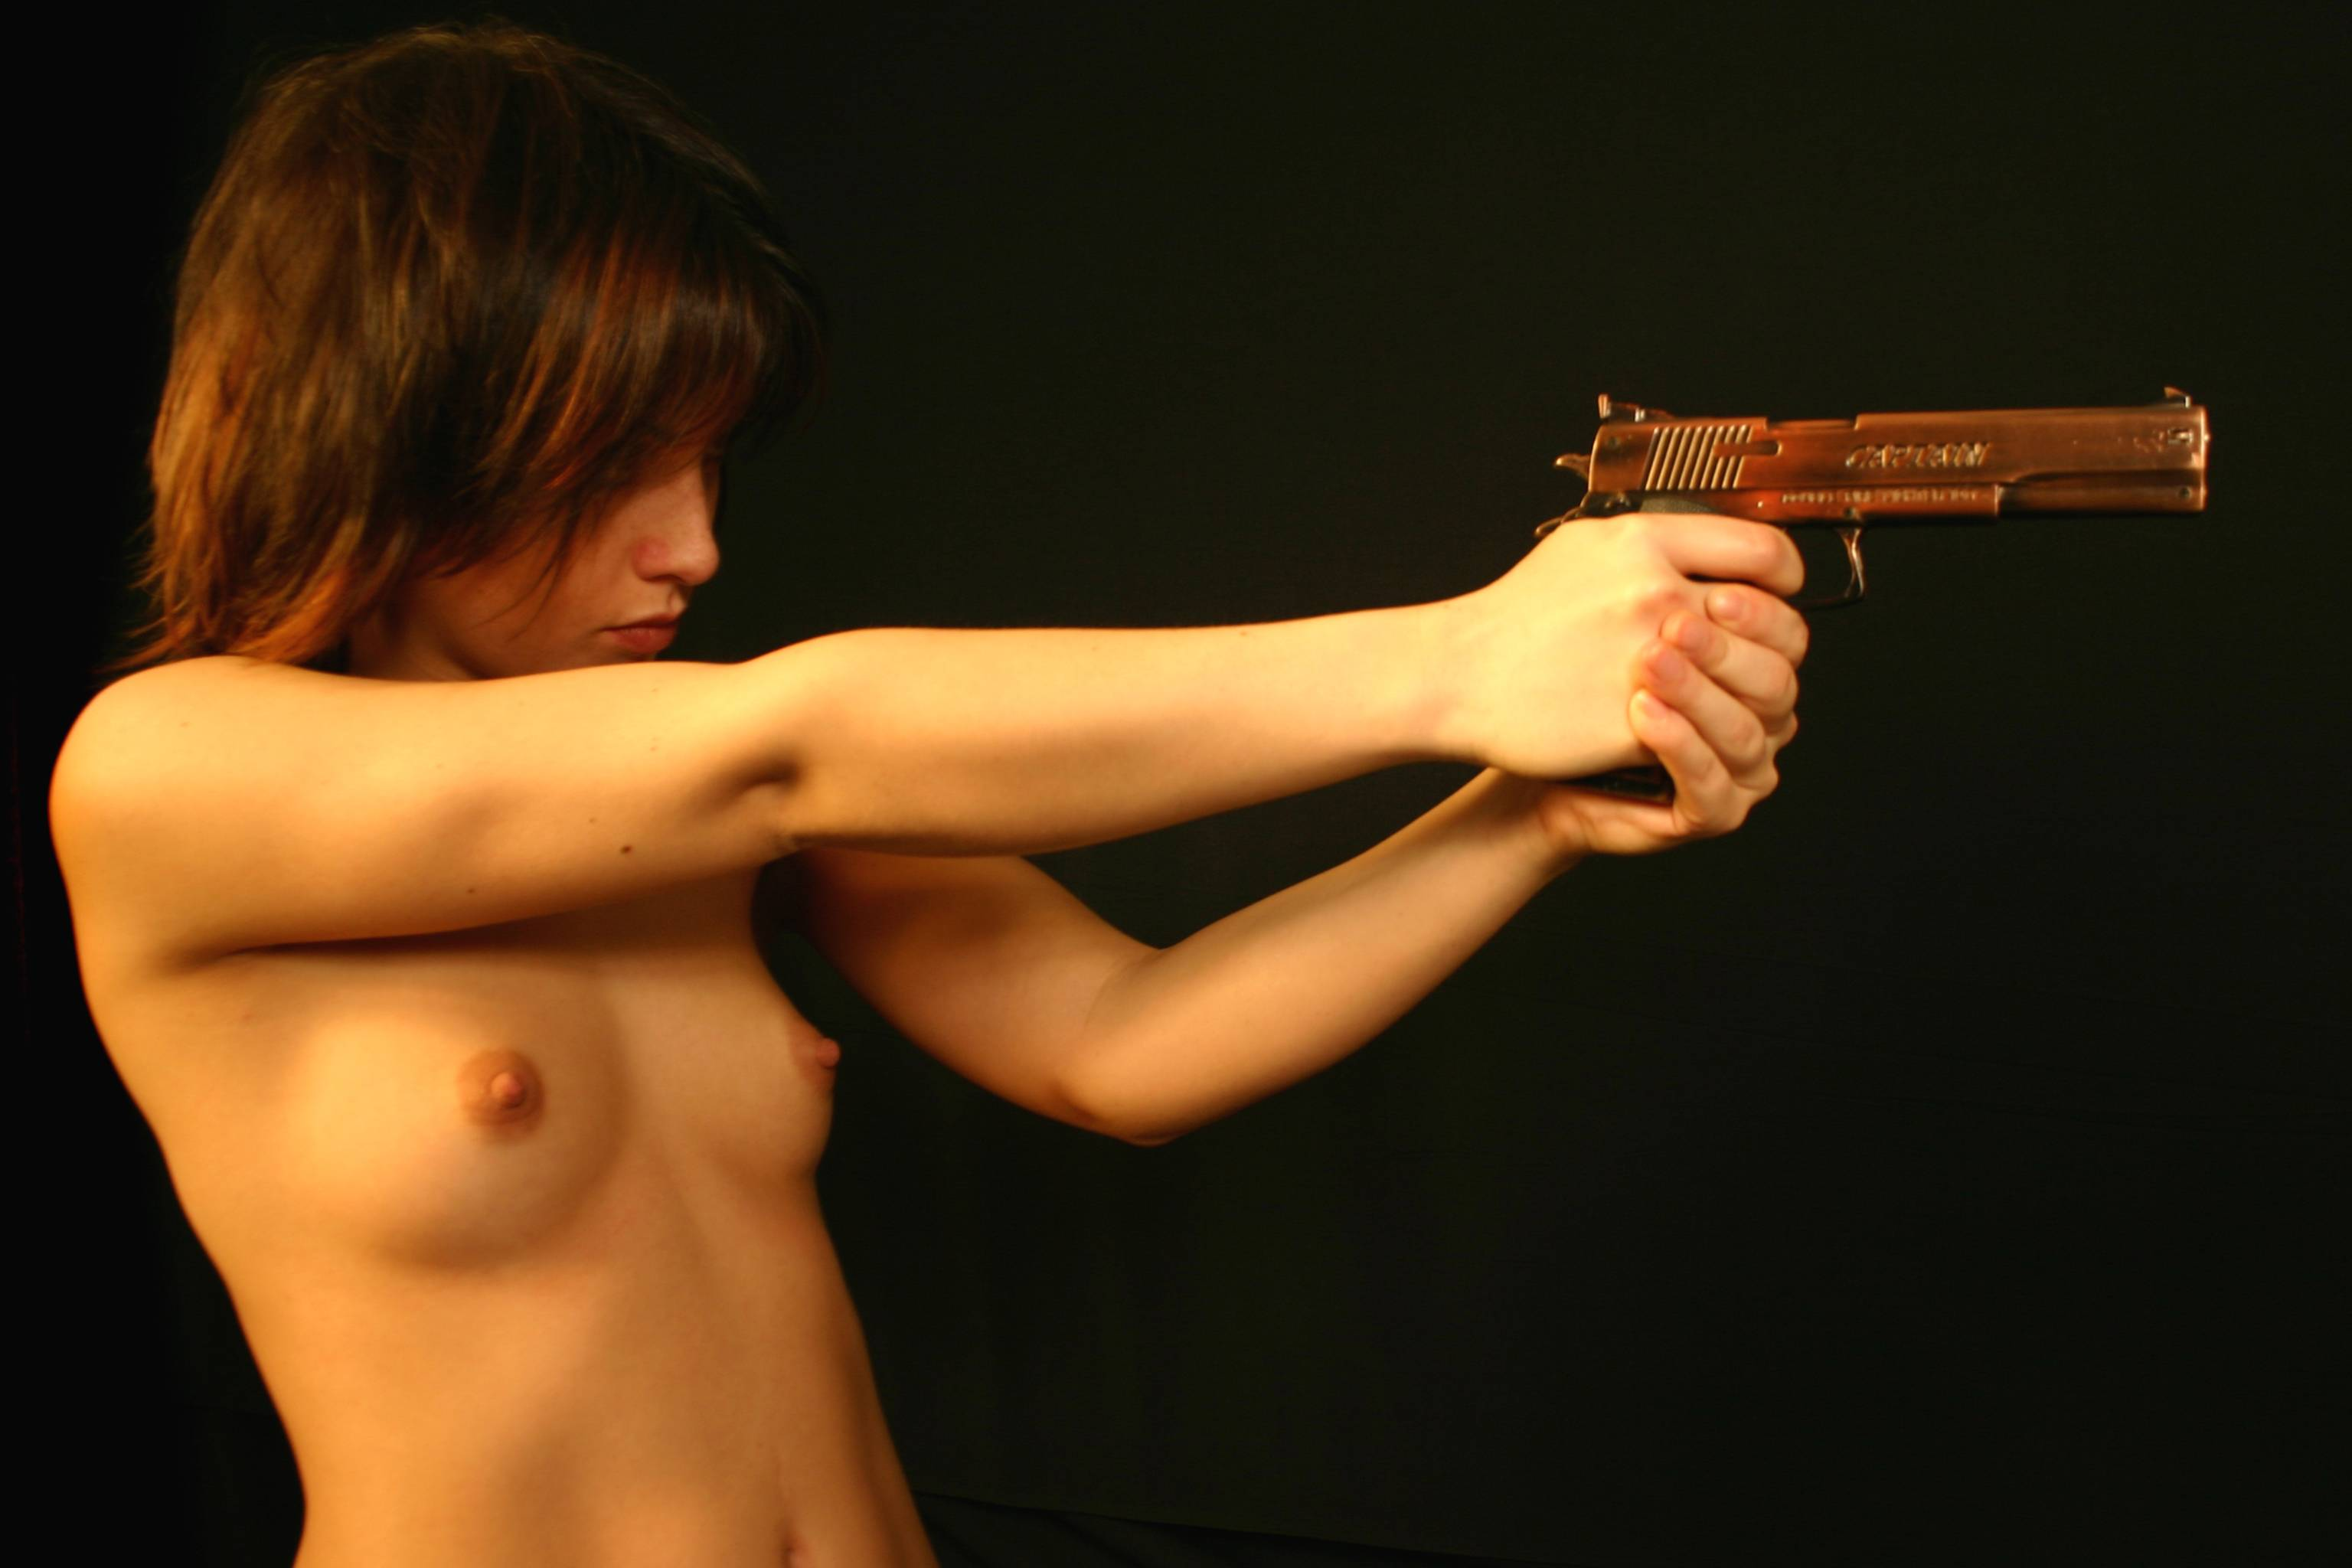 Hot topless babe with gun